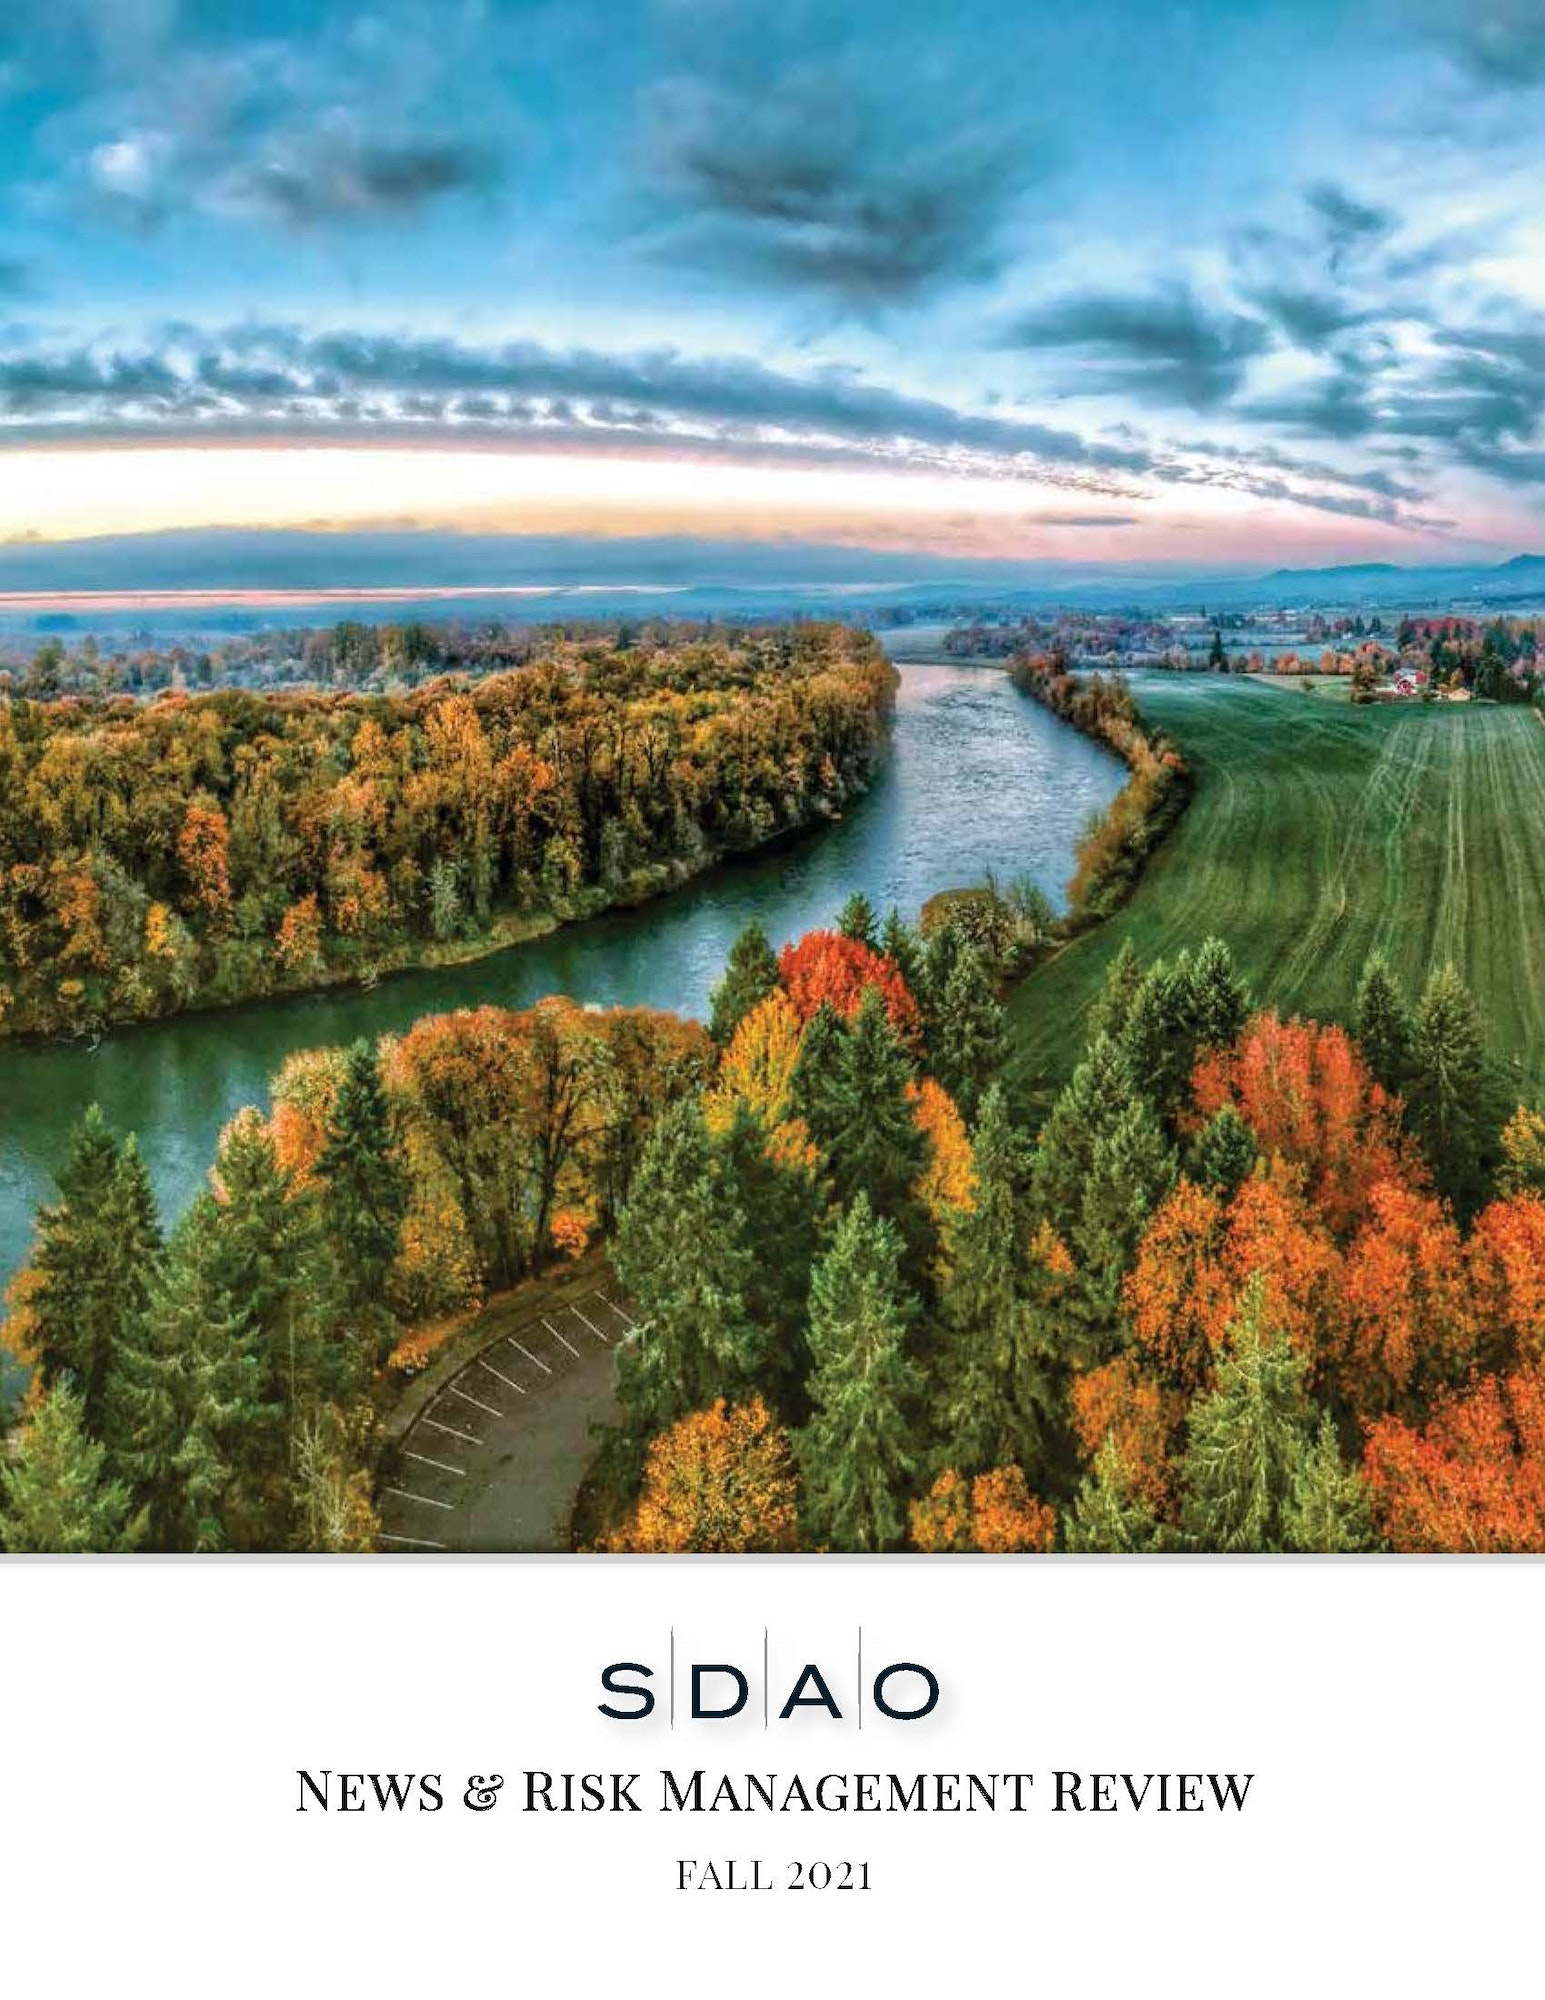 SDAO News & Risk Management Review Fall 2021. Image contains: scenery, nature, outdoors, landscape, panoramic, water, plant, aerial view, vegetation, land, and tree